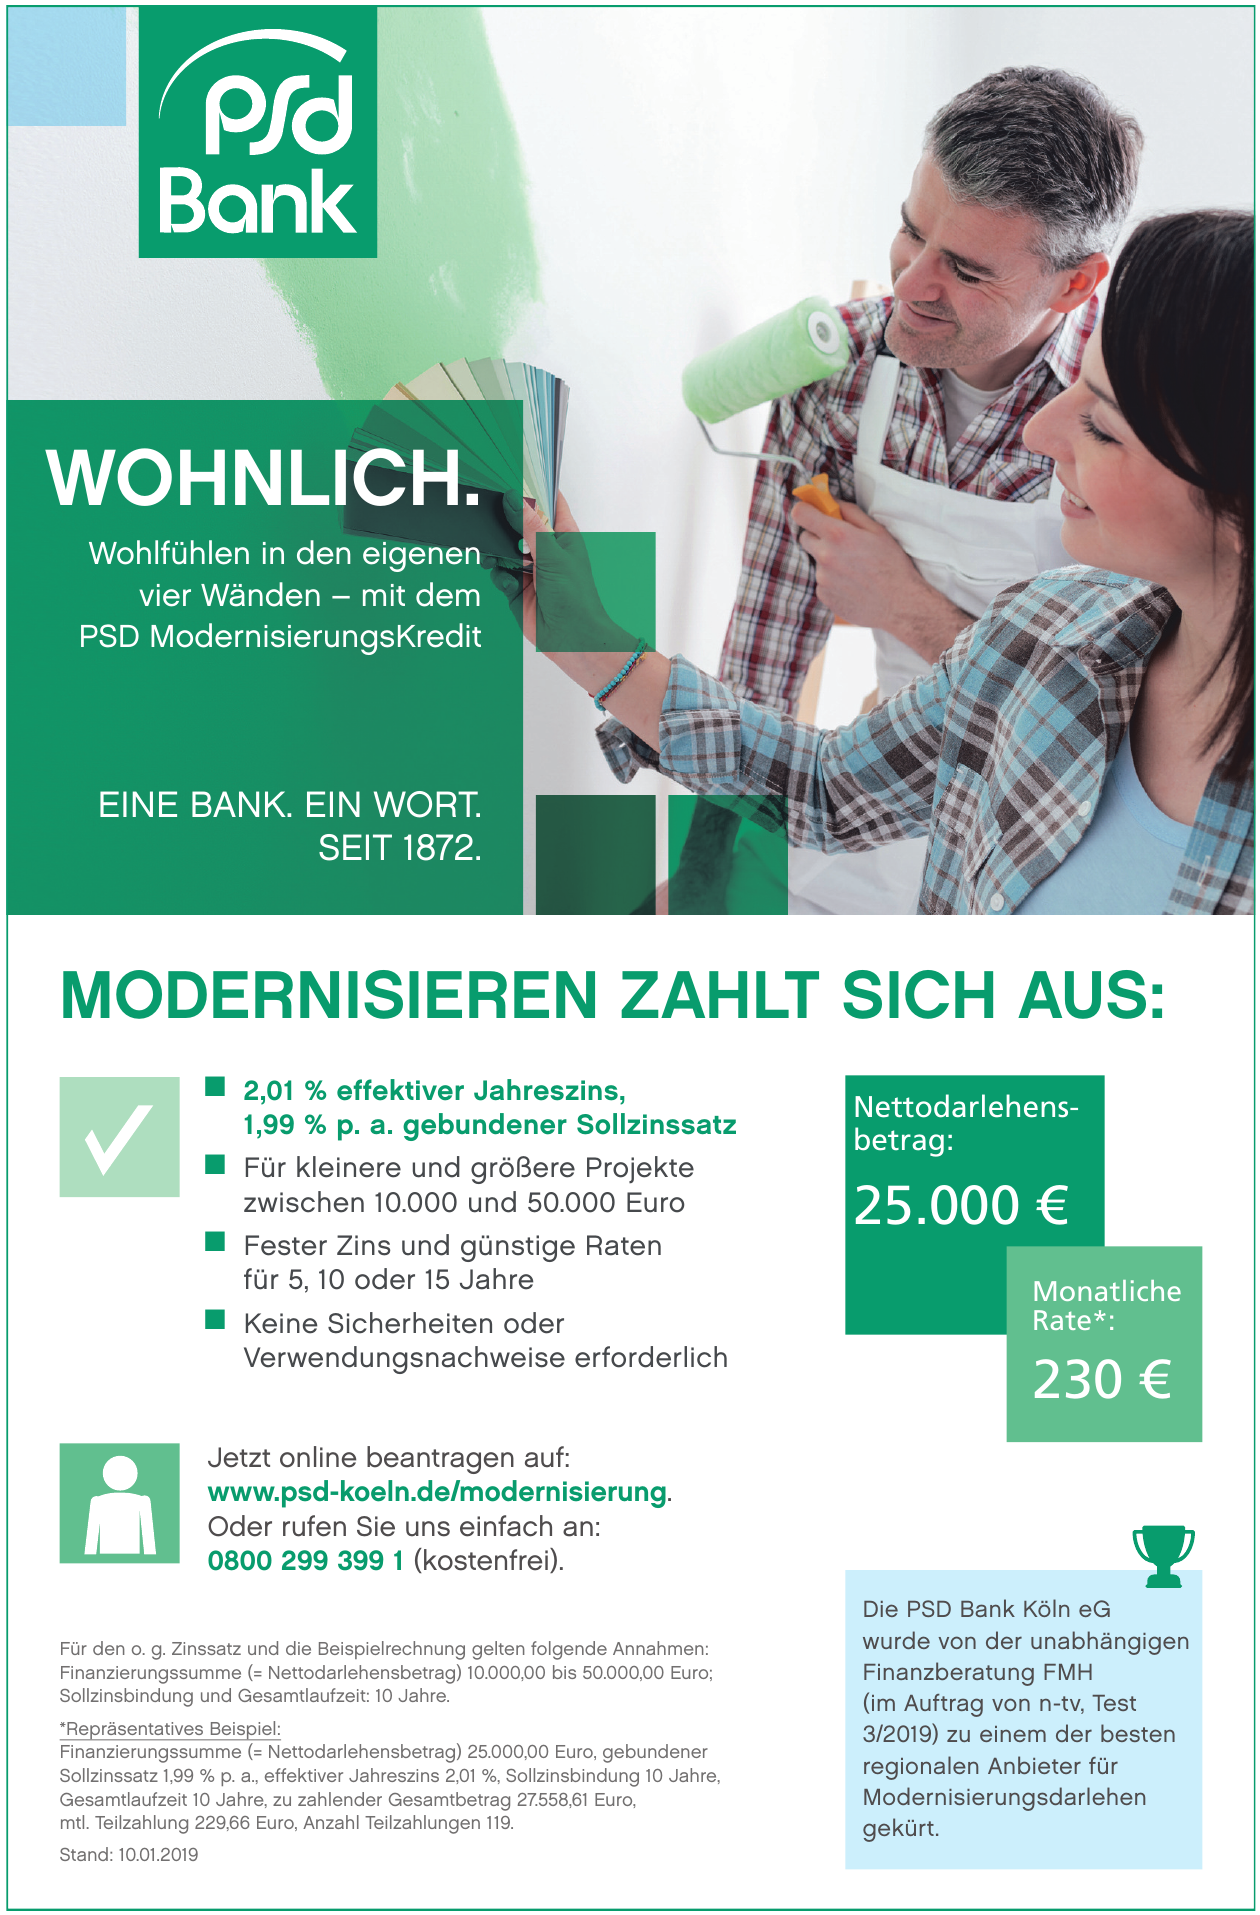 PSD Bank Köln eG - PSD ModernisierungsKredit